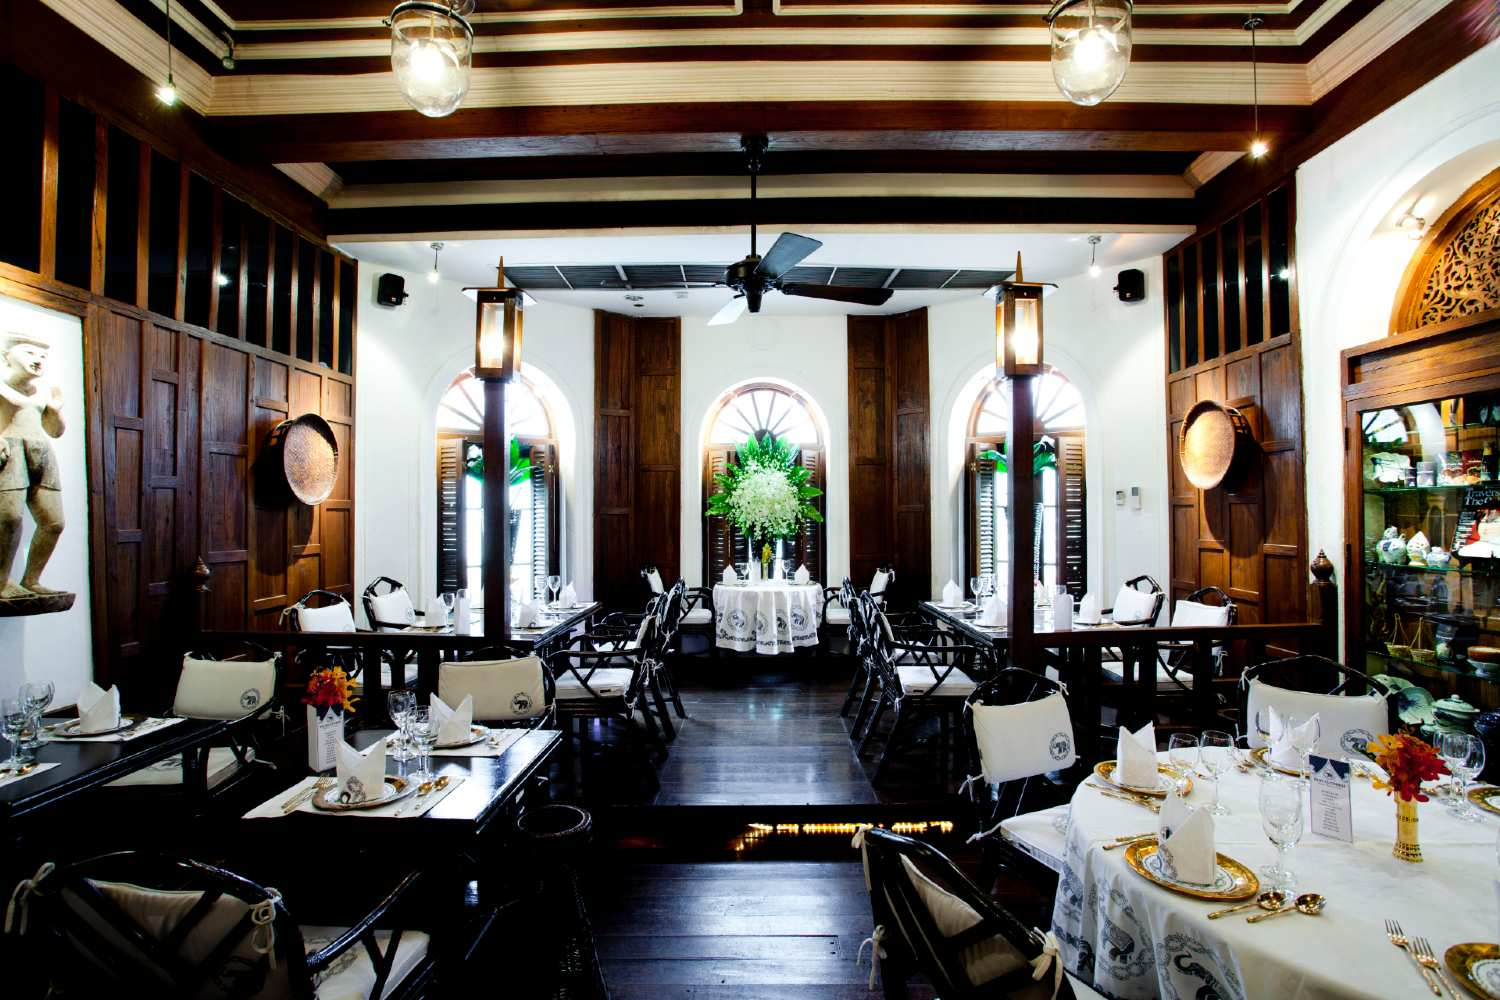 The Blue Elephant Restaurant in Bangkok